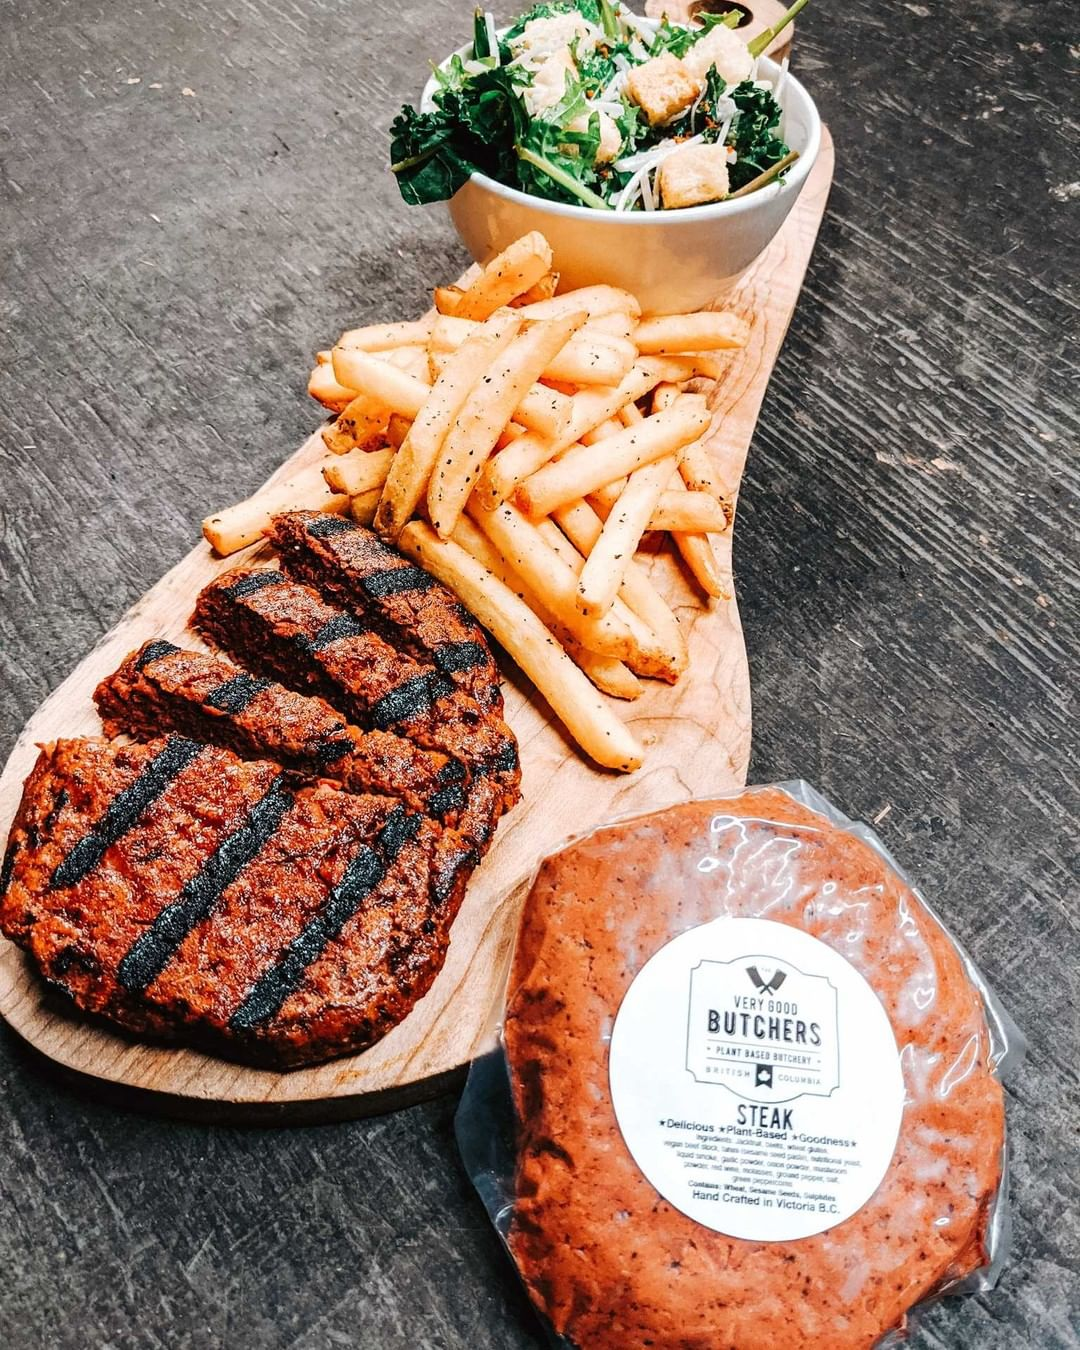 Very Good steak with fries